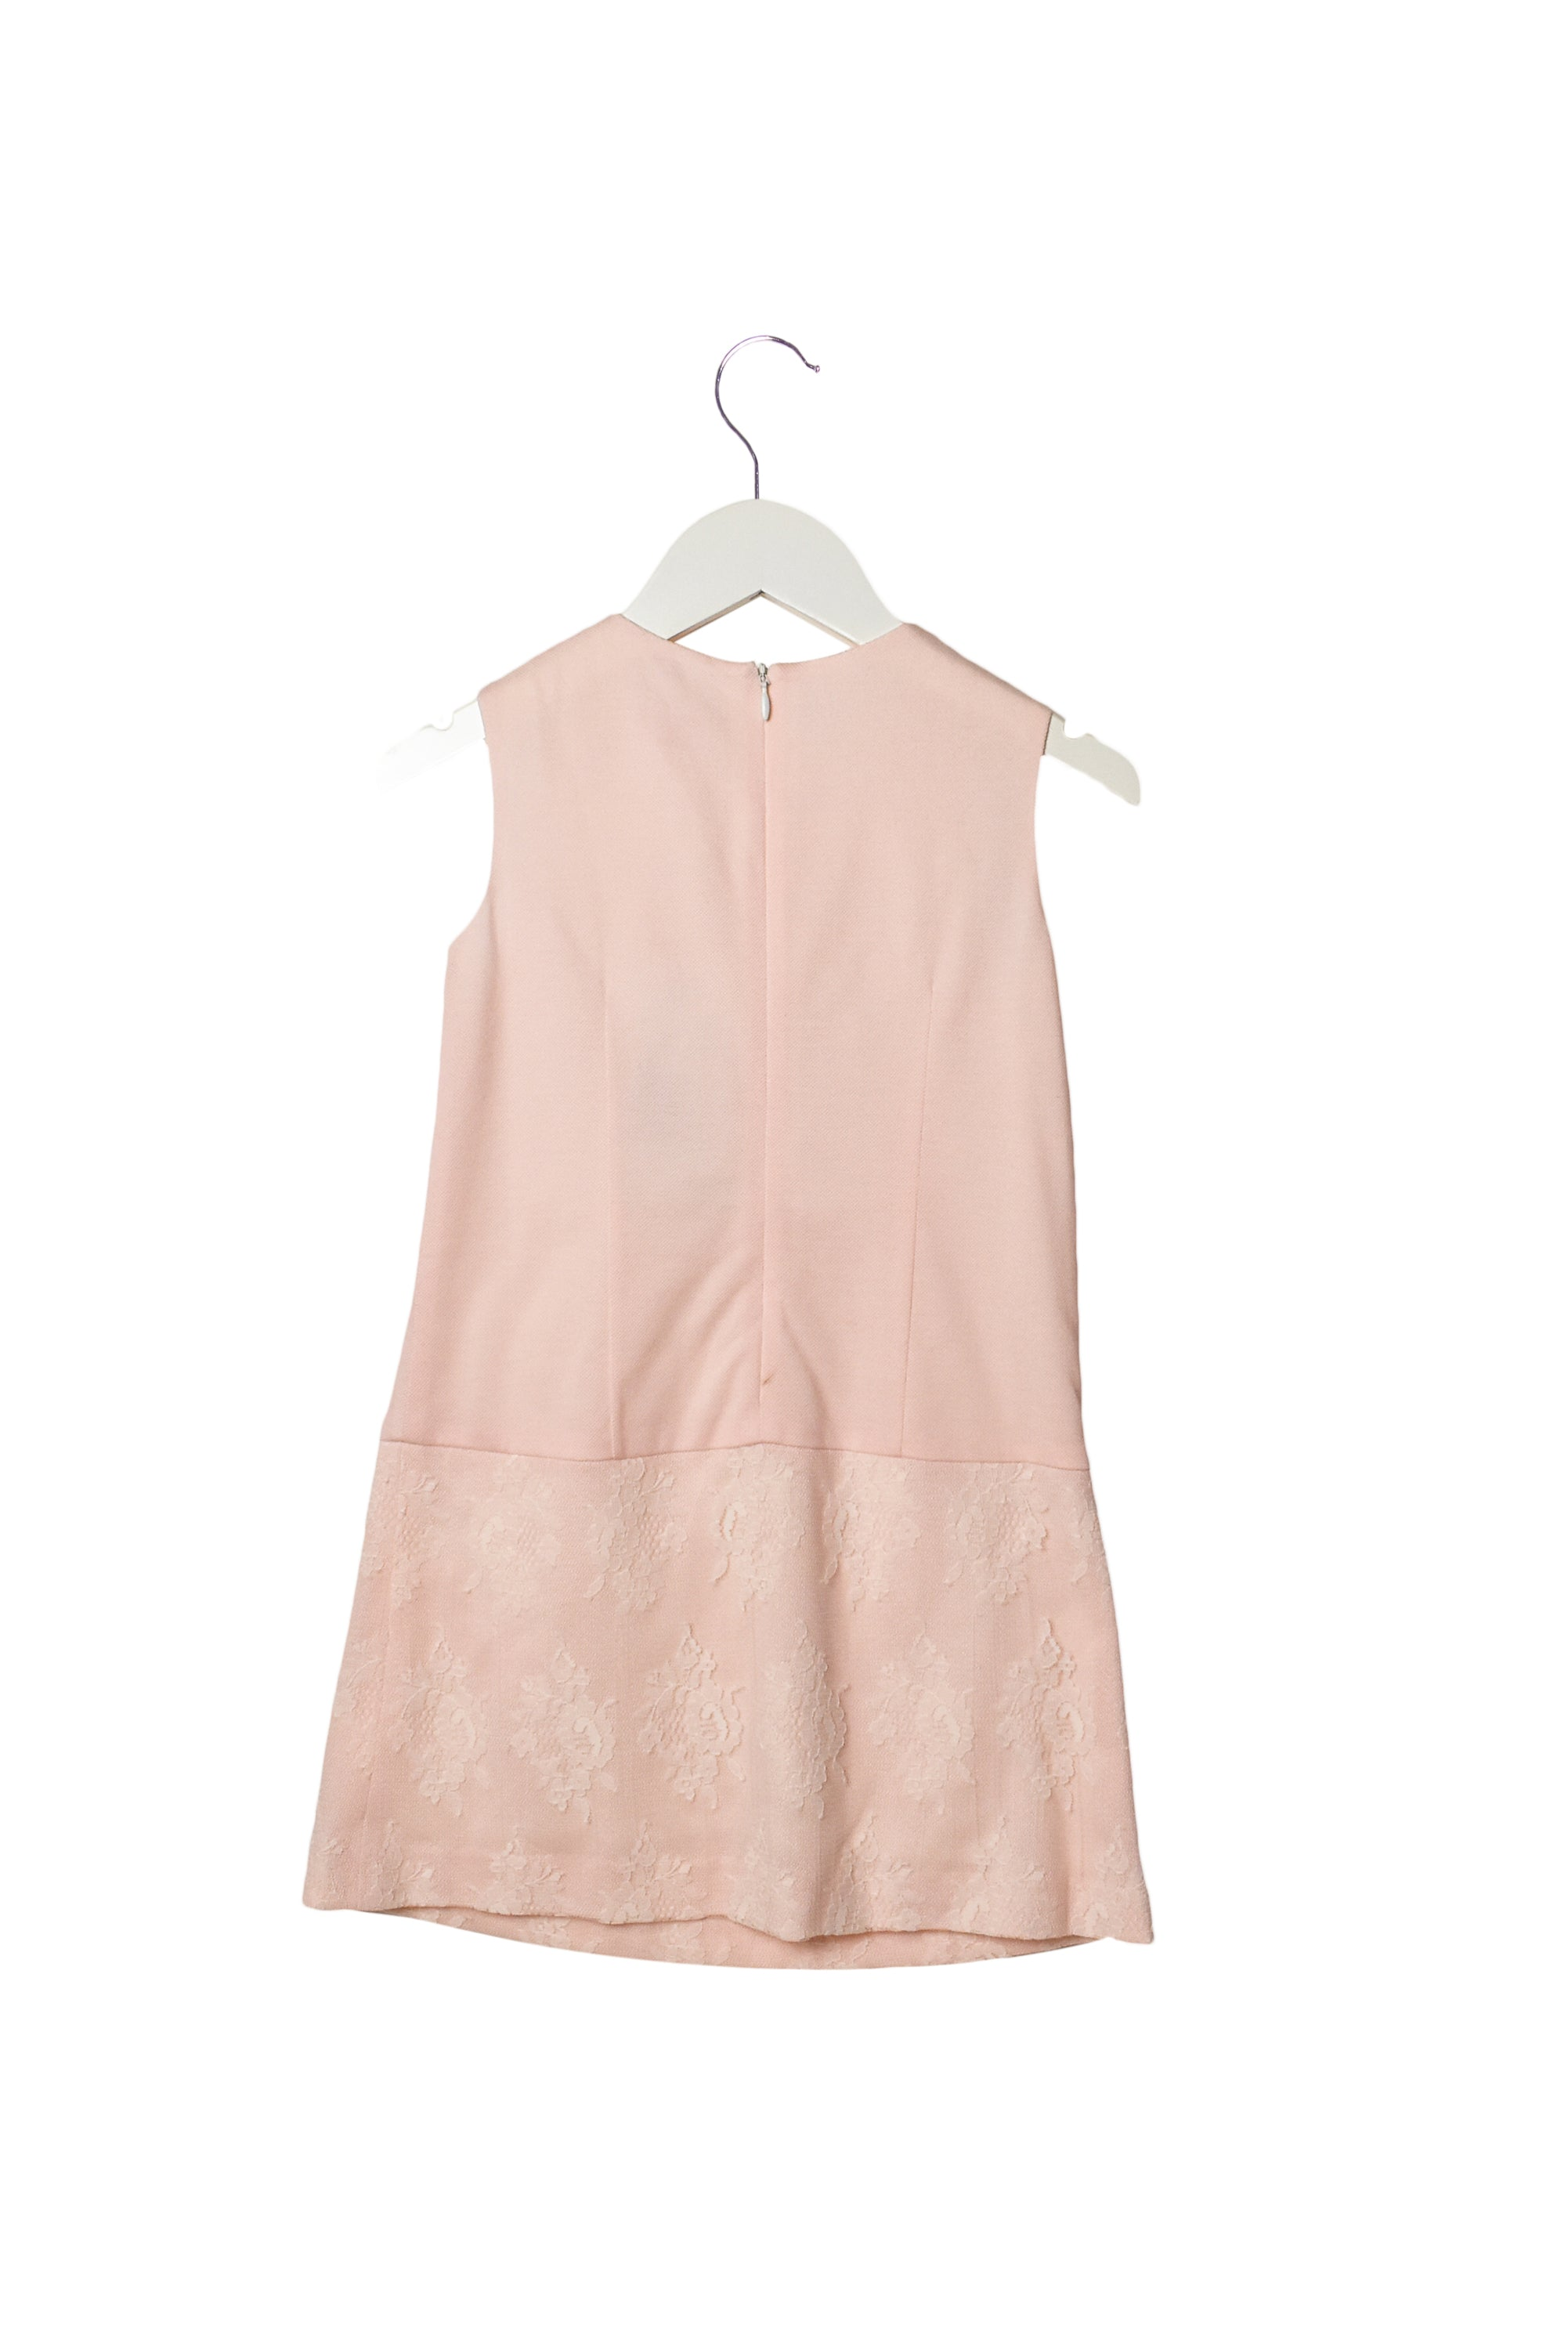 10006894 Nicholas & Bears Kids~Dress 6T at Retykle